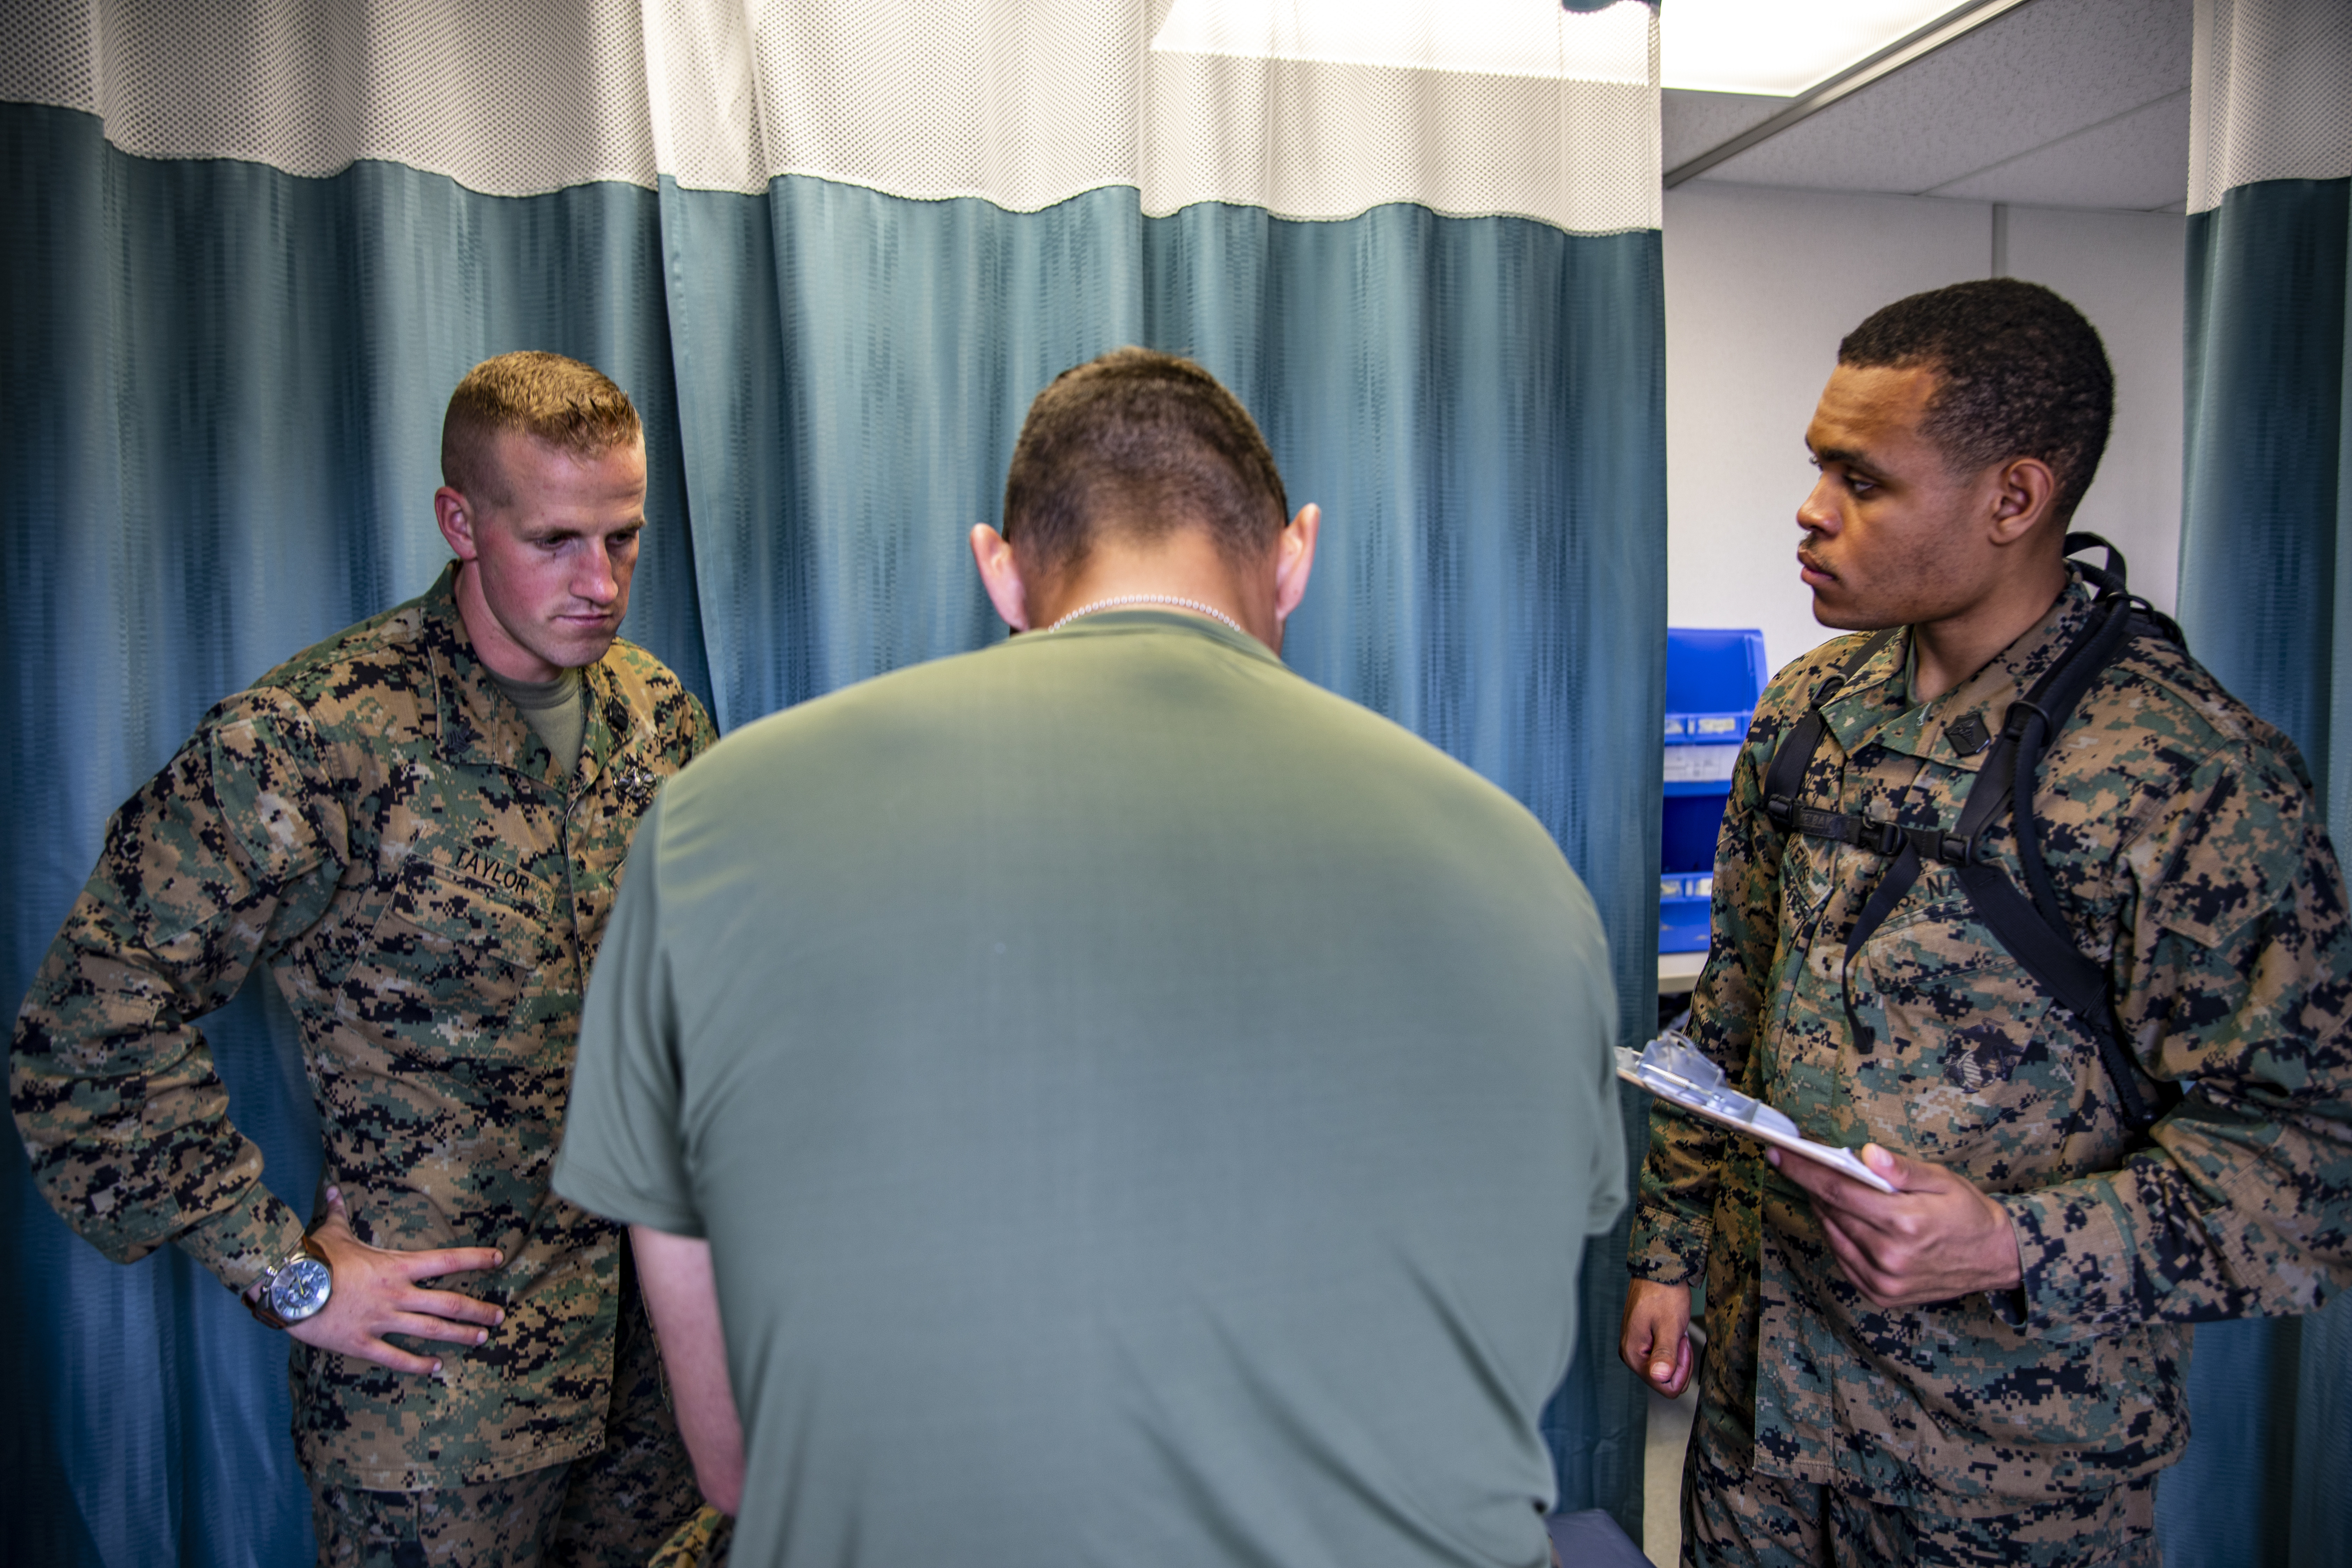 4th MAW Navy Corpsmen provide medical services in CFB Cold Lake, Canada